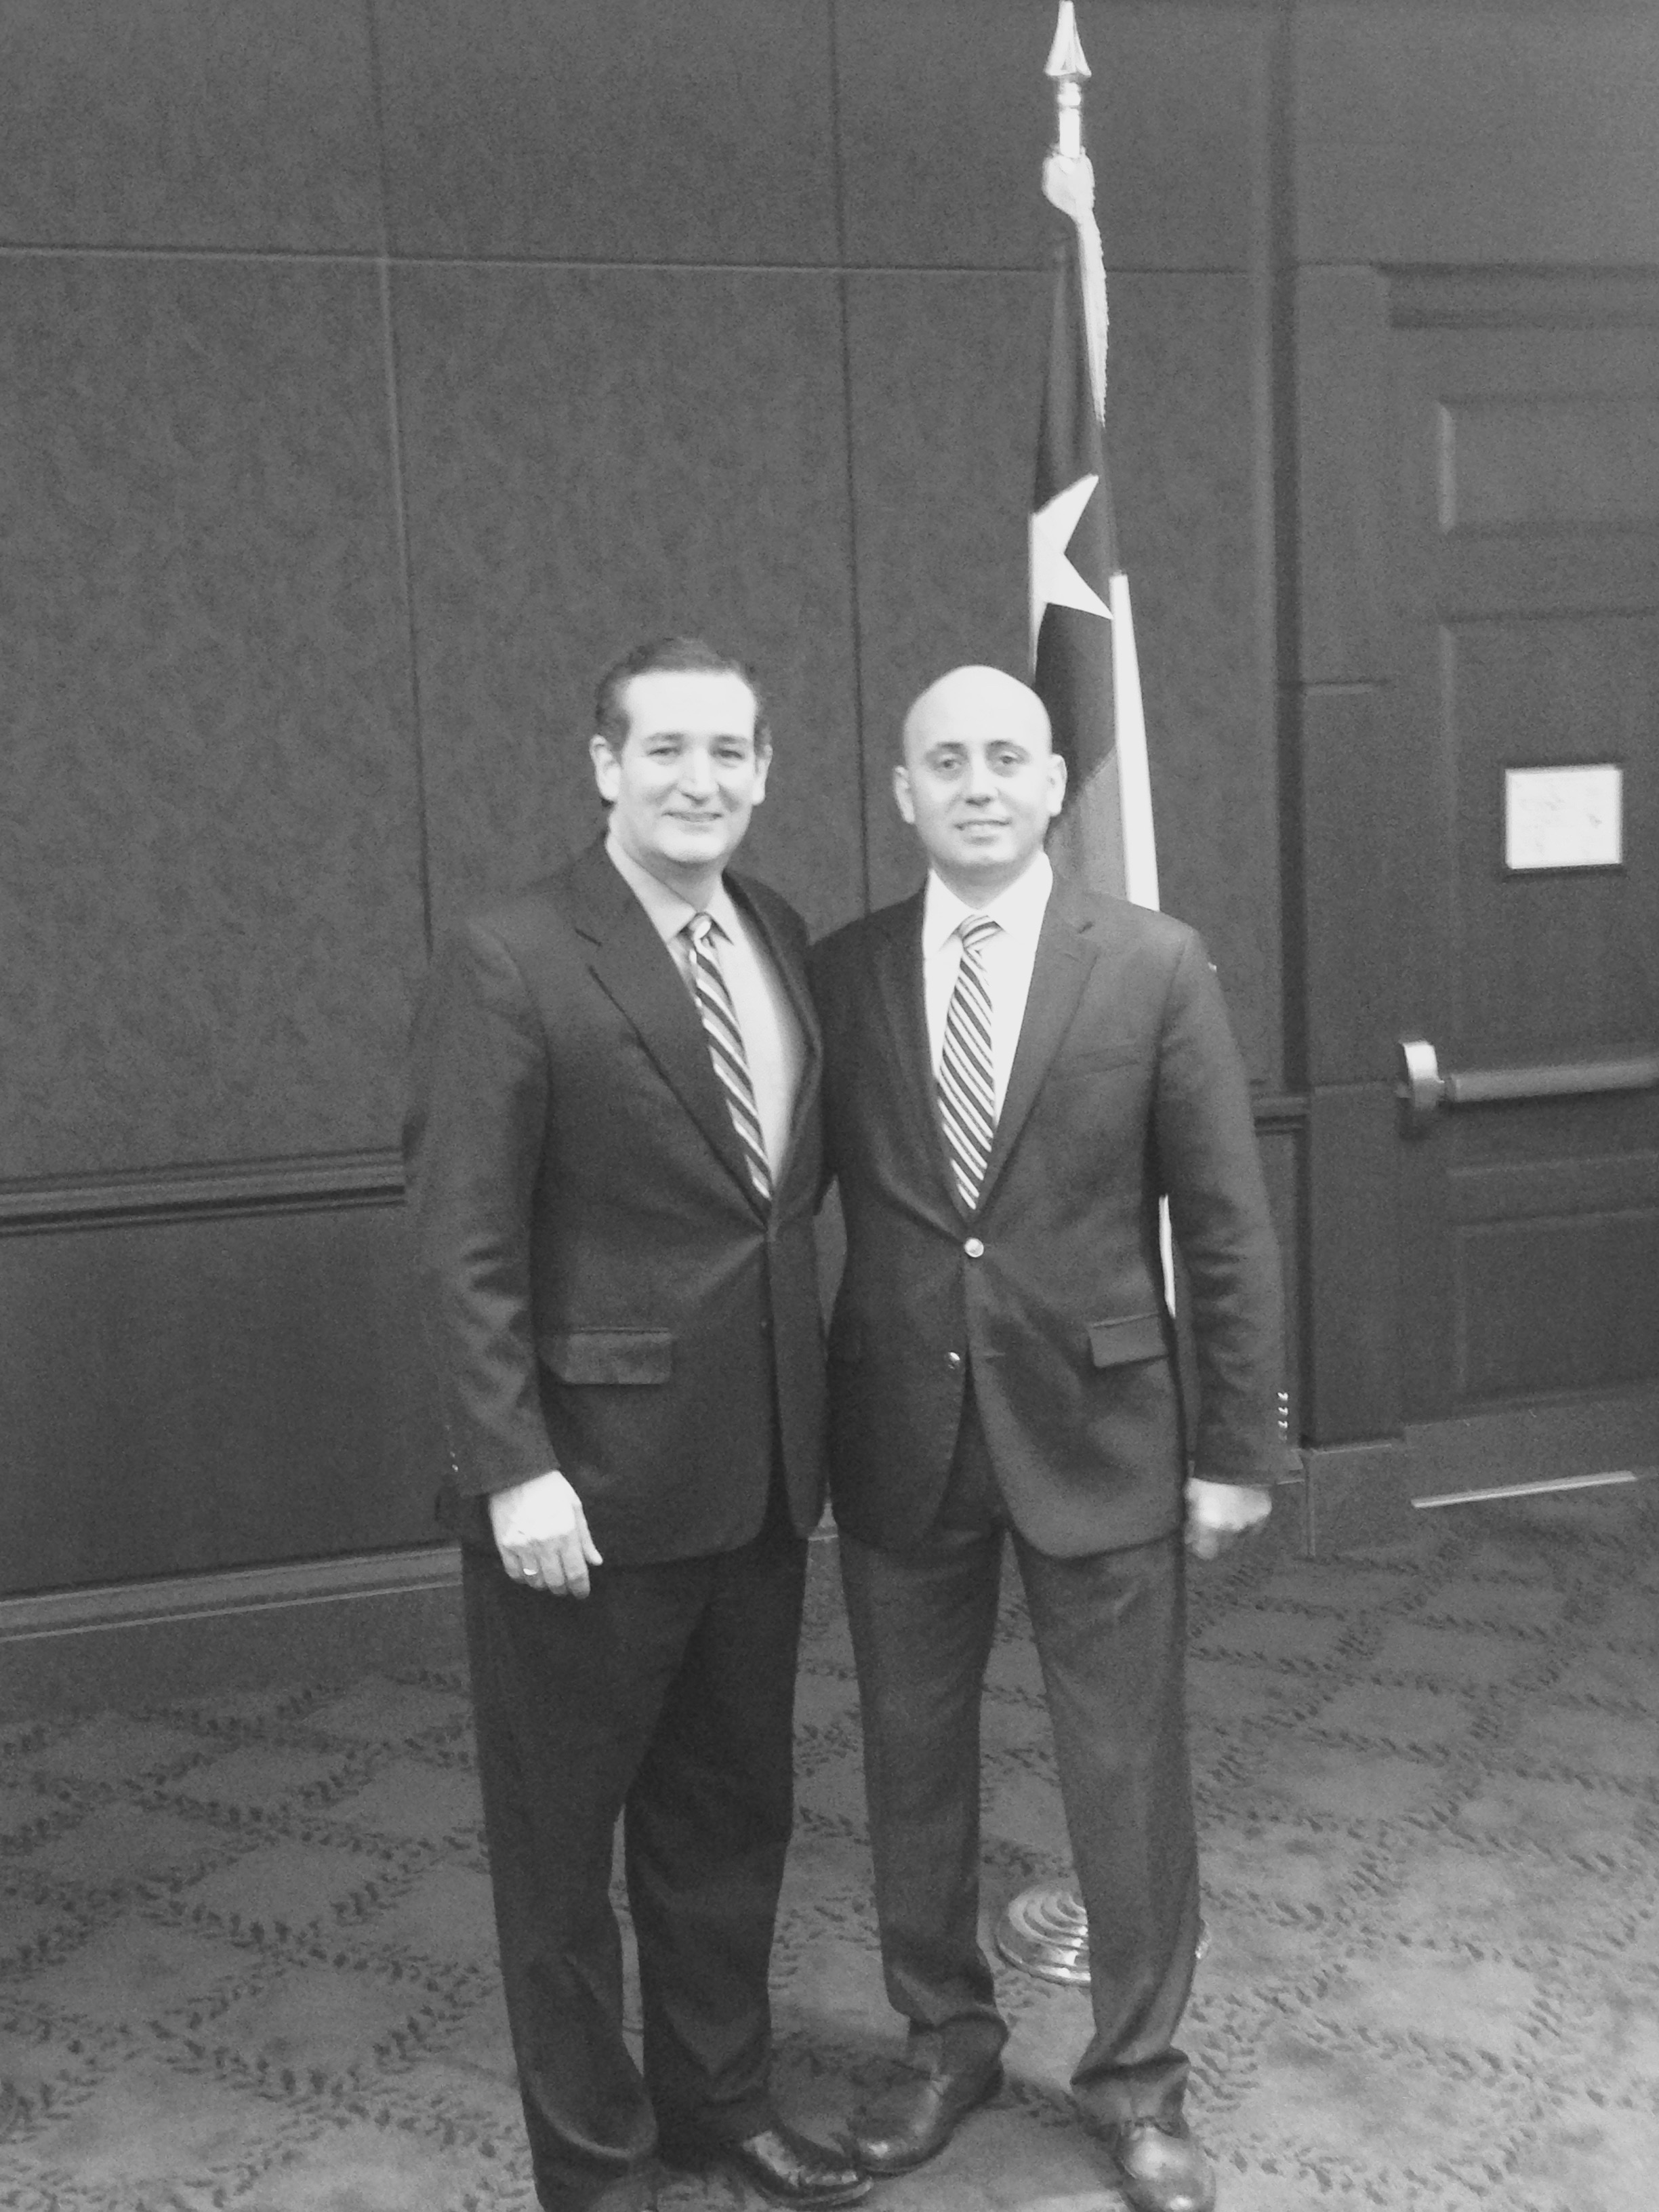 Bilal Eksili with Senator Ted Cruz